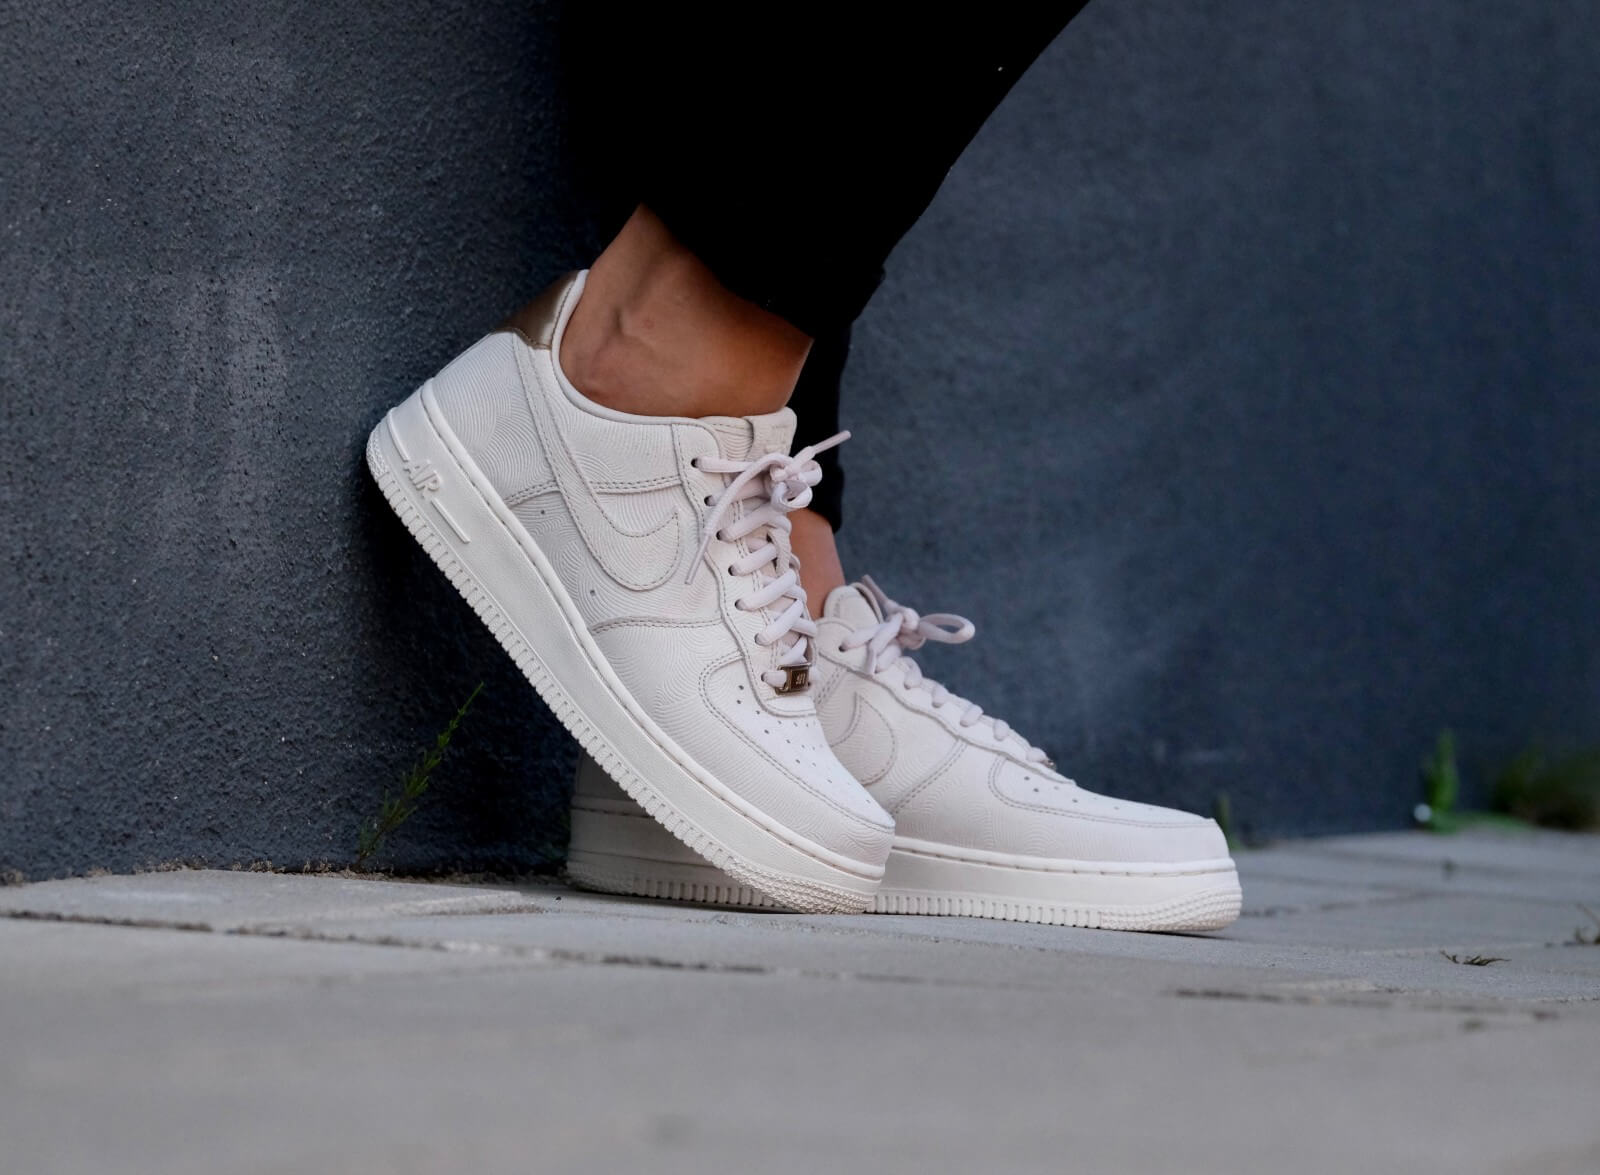 Nike WMNS Air Force 1 '07 PRM Grijs Sneaker District